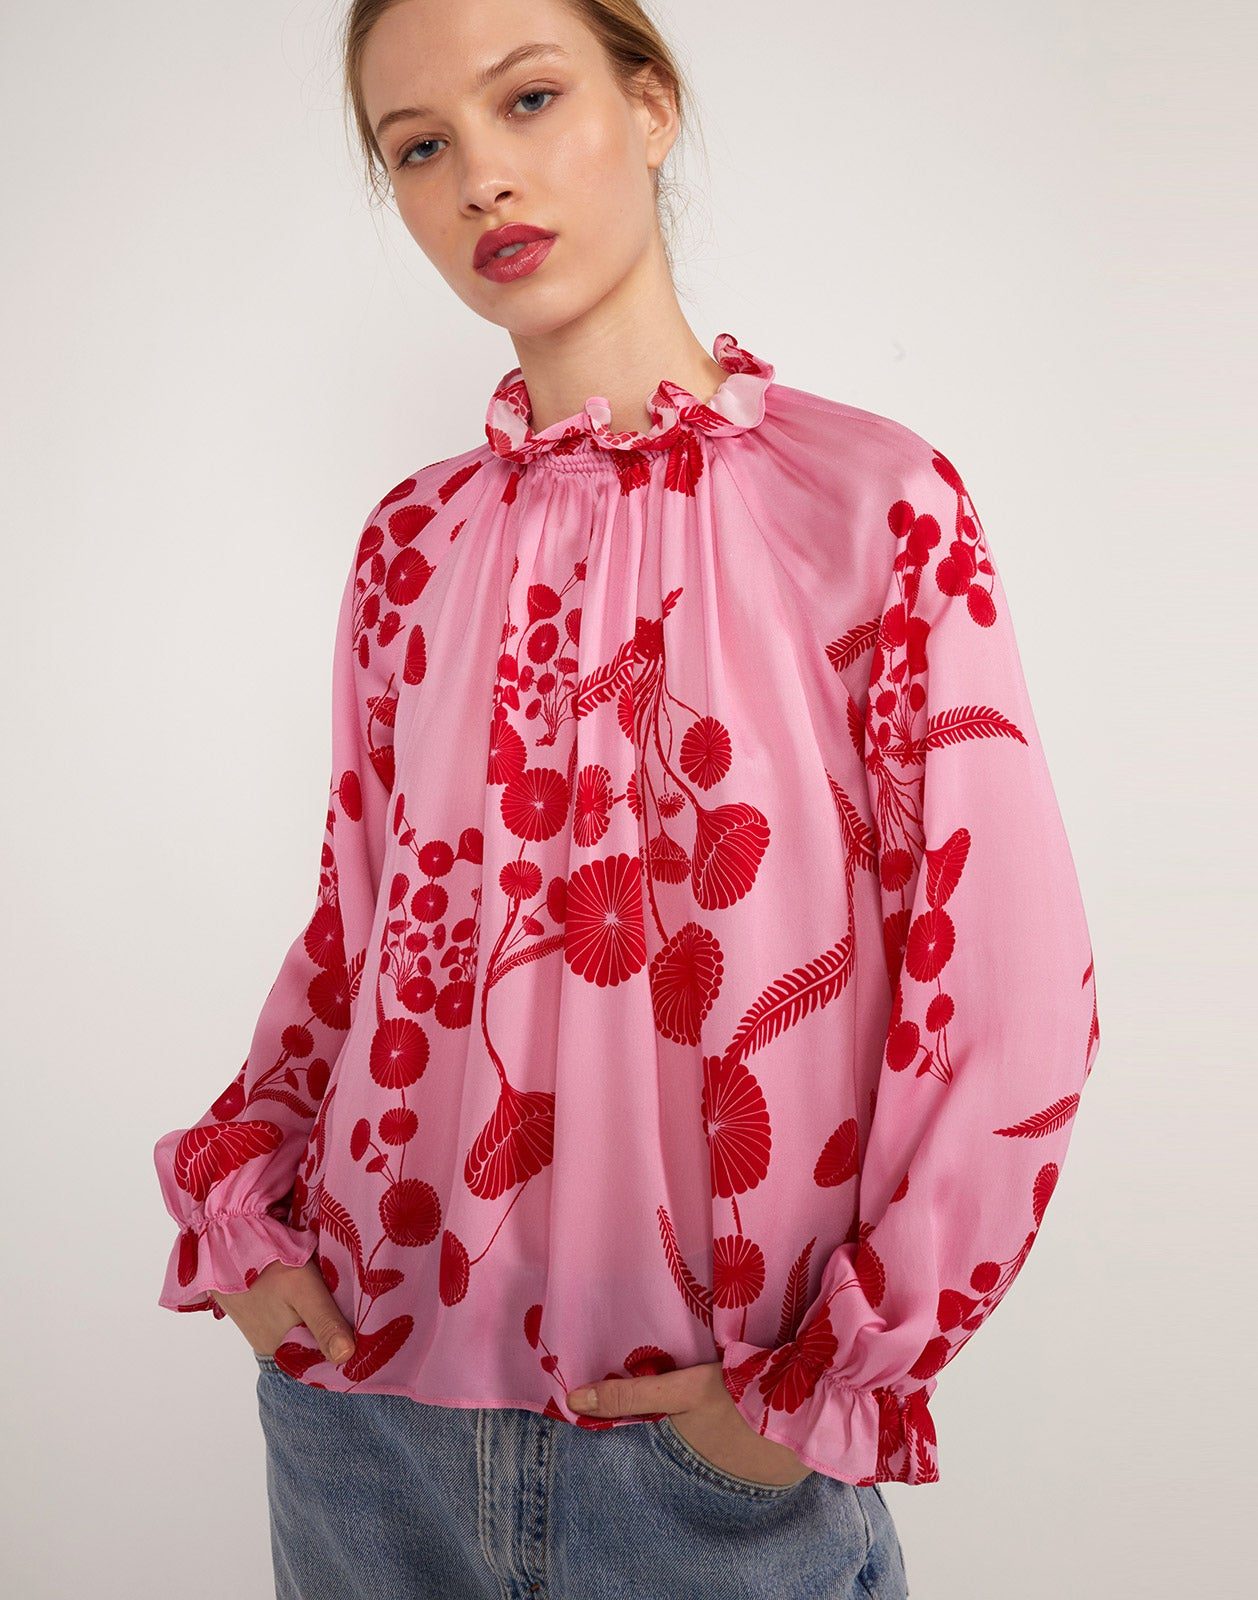 Alternate full view of model wearing Poppy Smocked Ruffle Top.